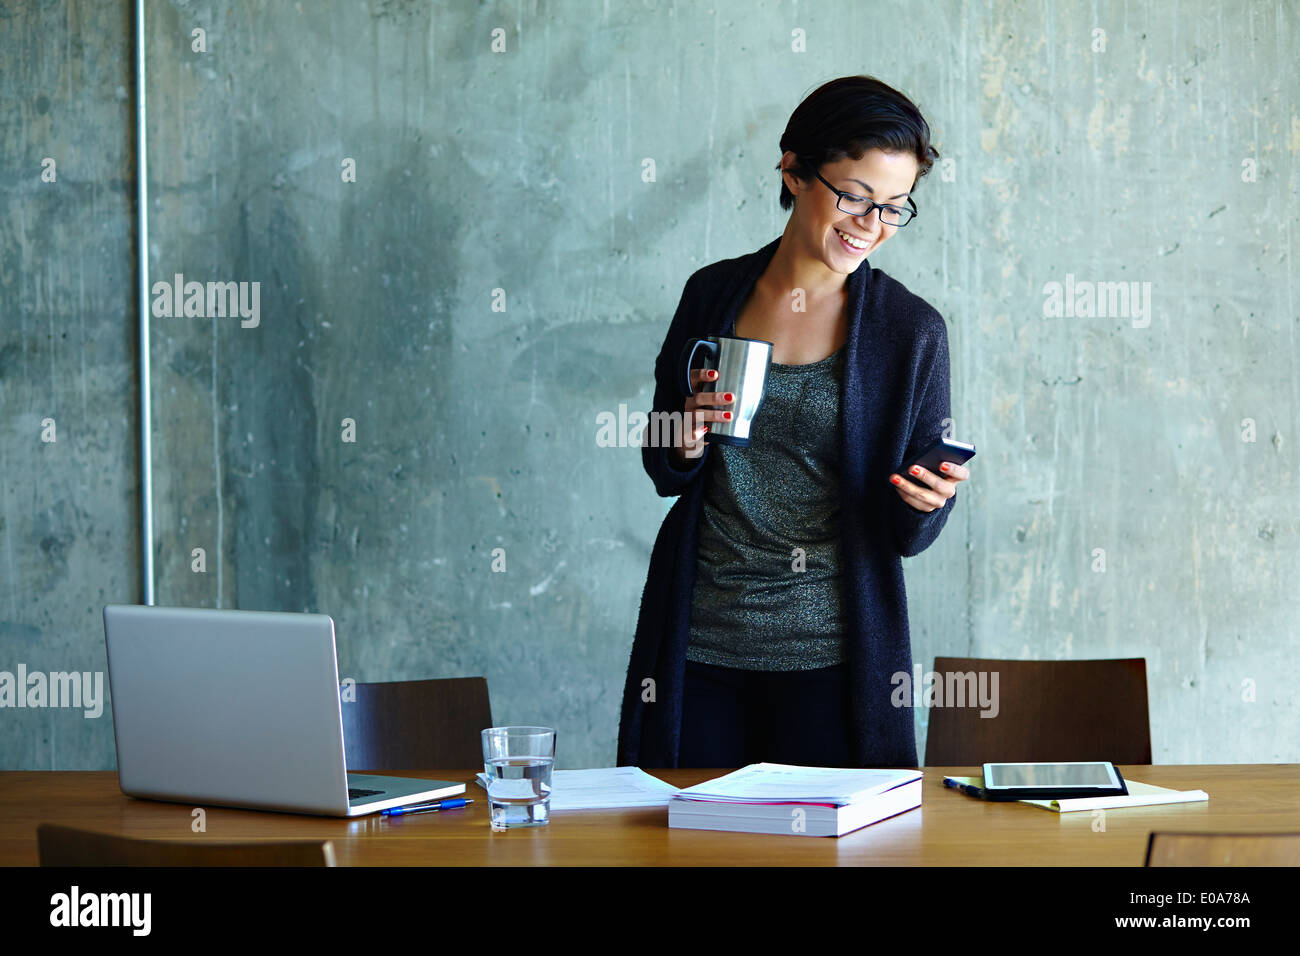 Young businesswoman looking at smartphone in office - Stock Image